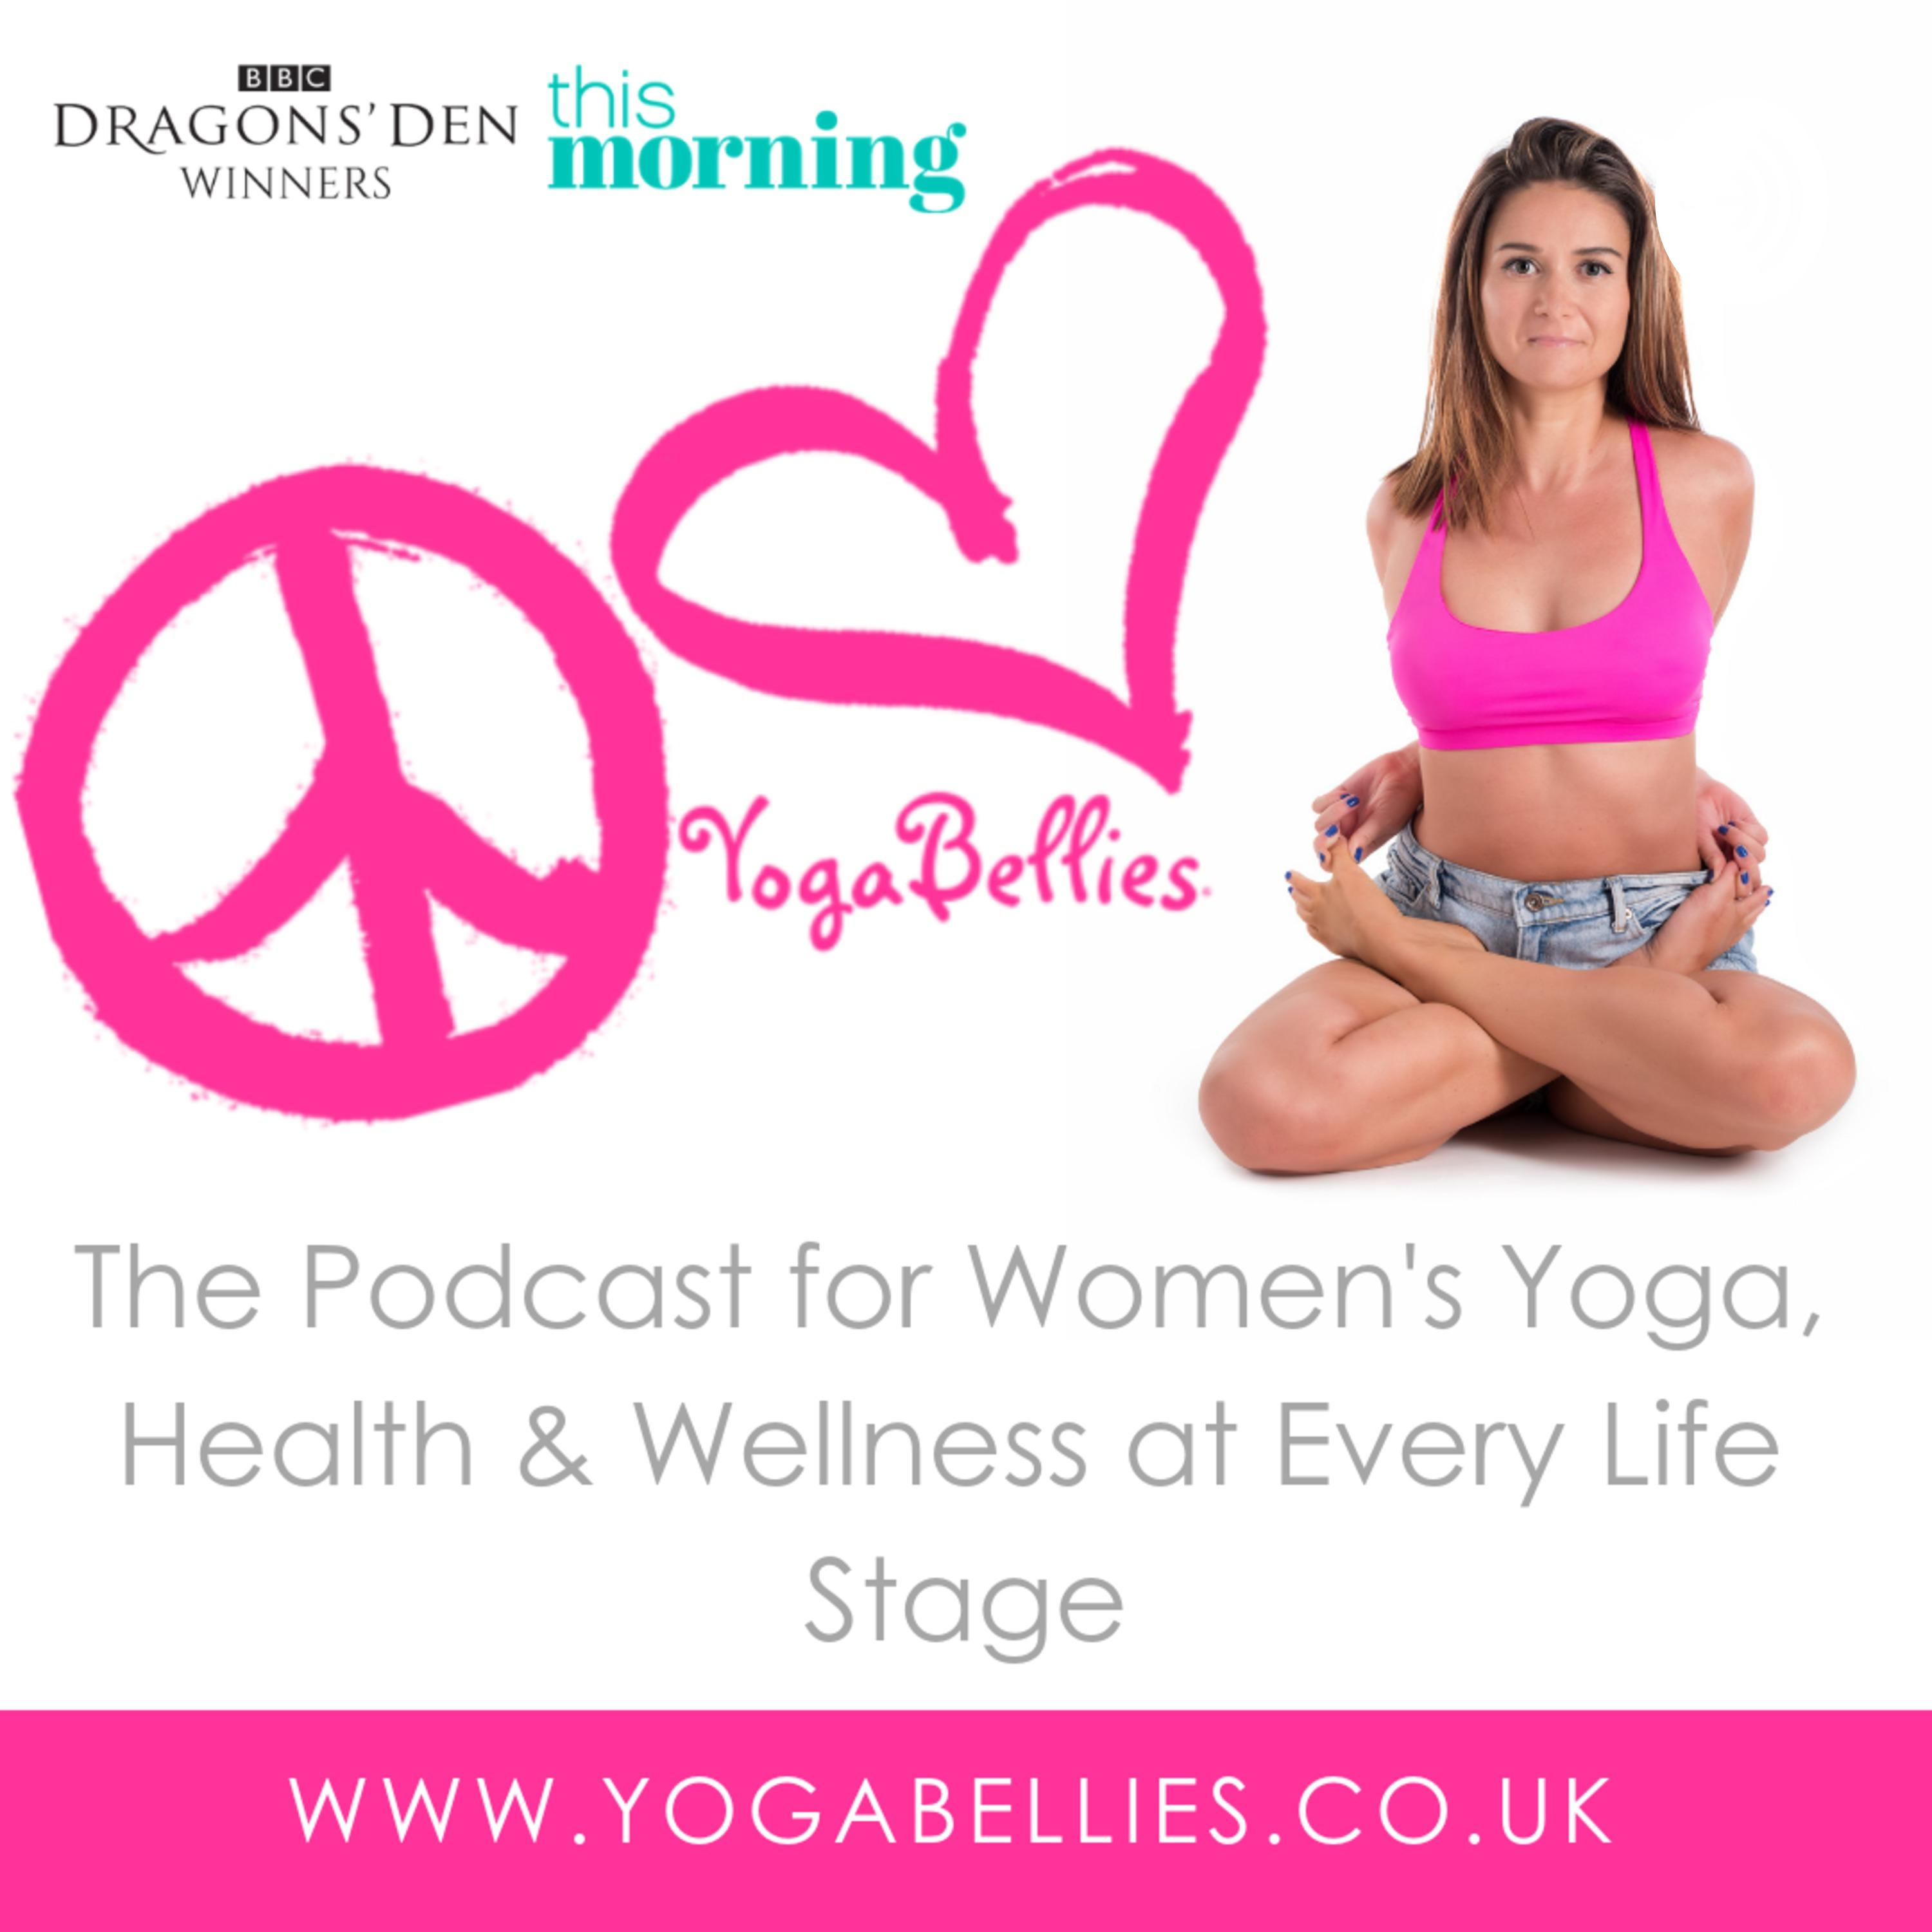 YogaBellies: Yoga and Women's Health through Menstruation, Pregnancy and Menopause